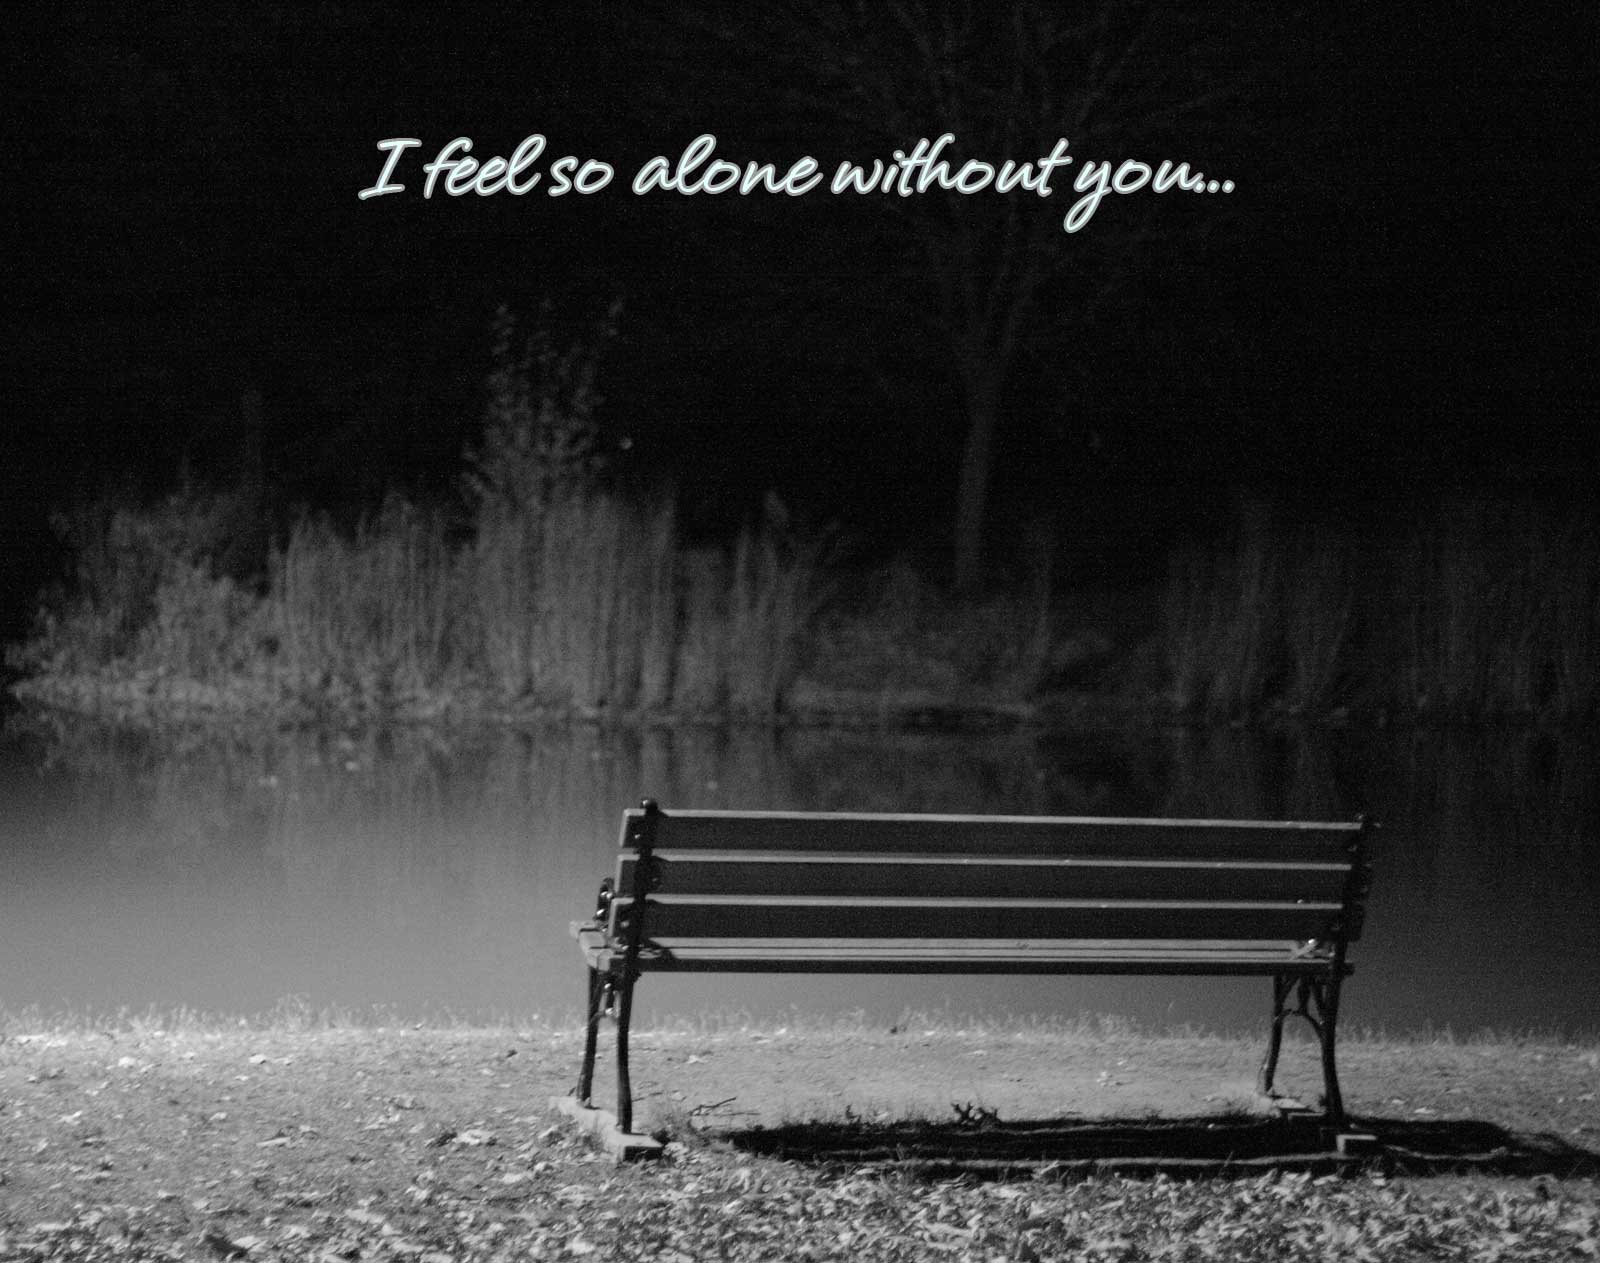 Sad Quotes Black And White Quotesgram: Quotes Dark Sad. QuotesGram